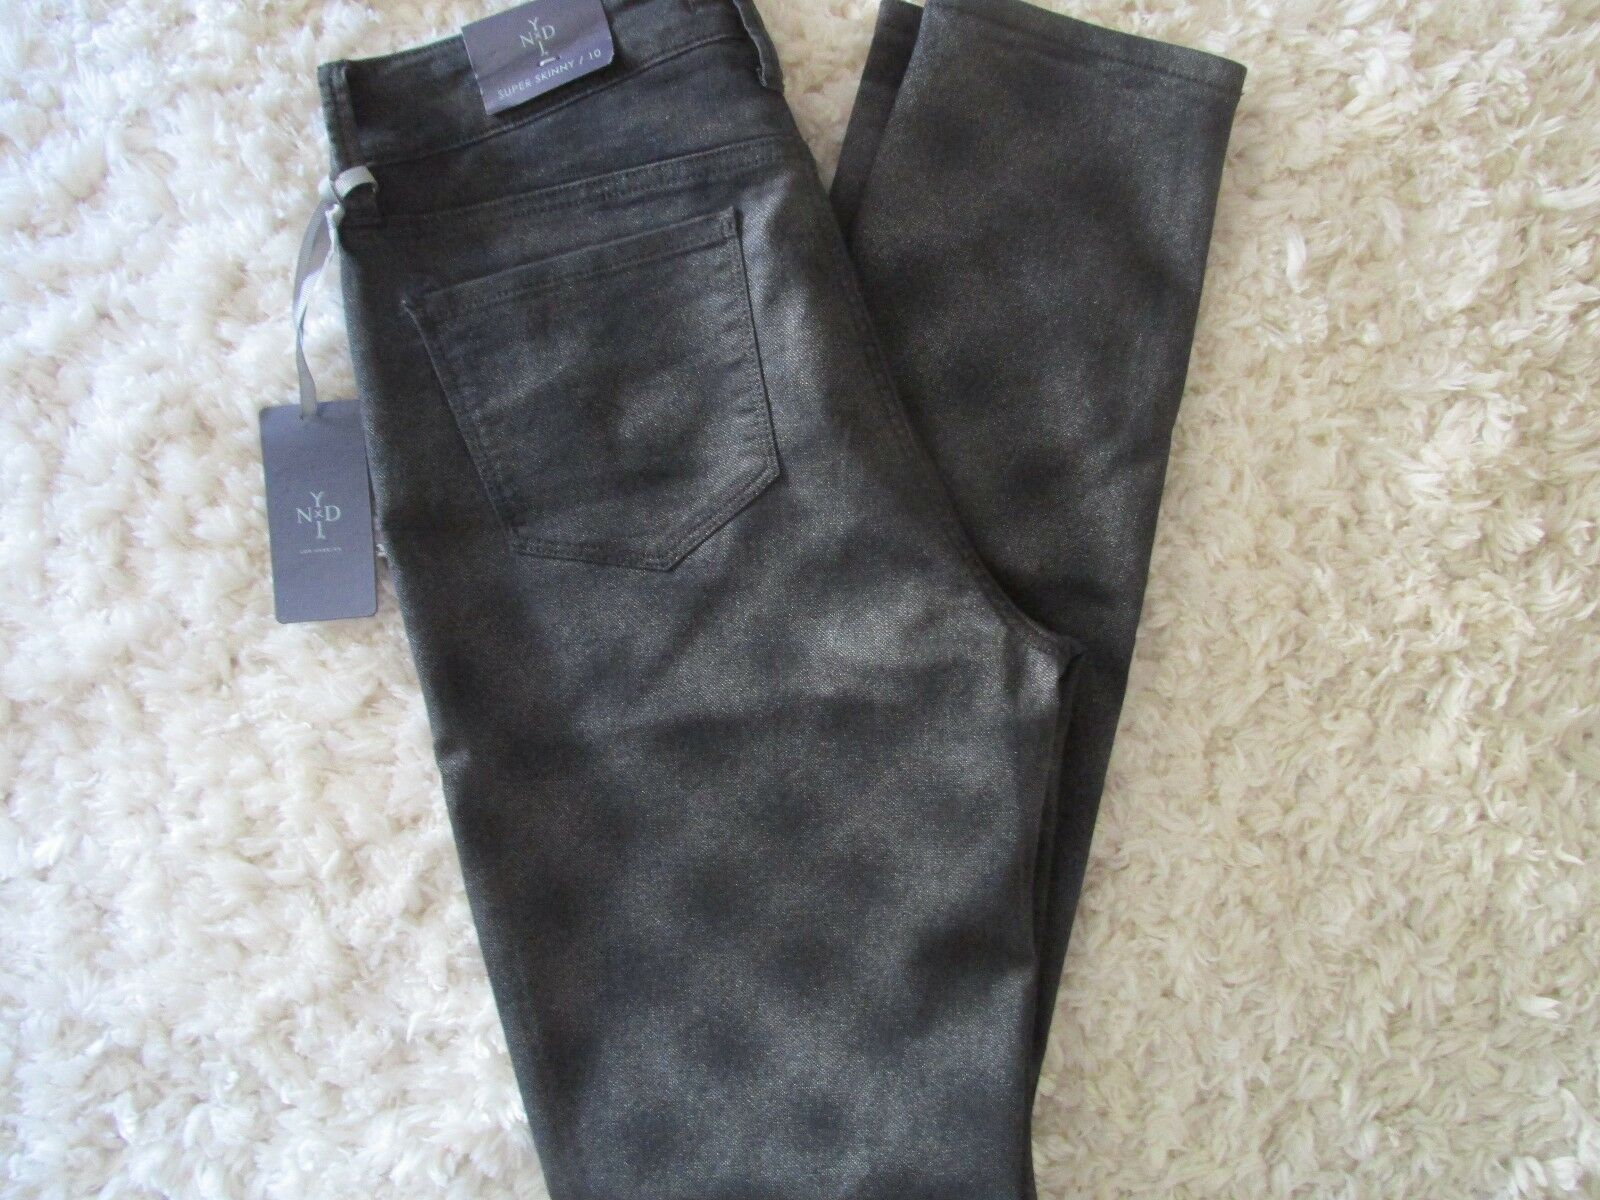 NYDJ NOT YOUR DAUGHTERS JEANS SUPER SKINNY JEANS SZ. 10